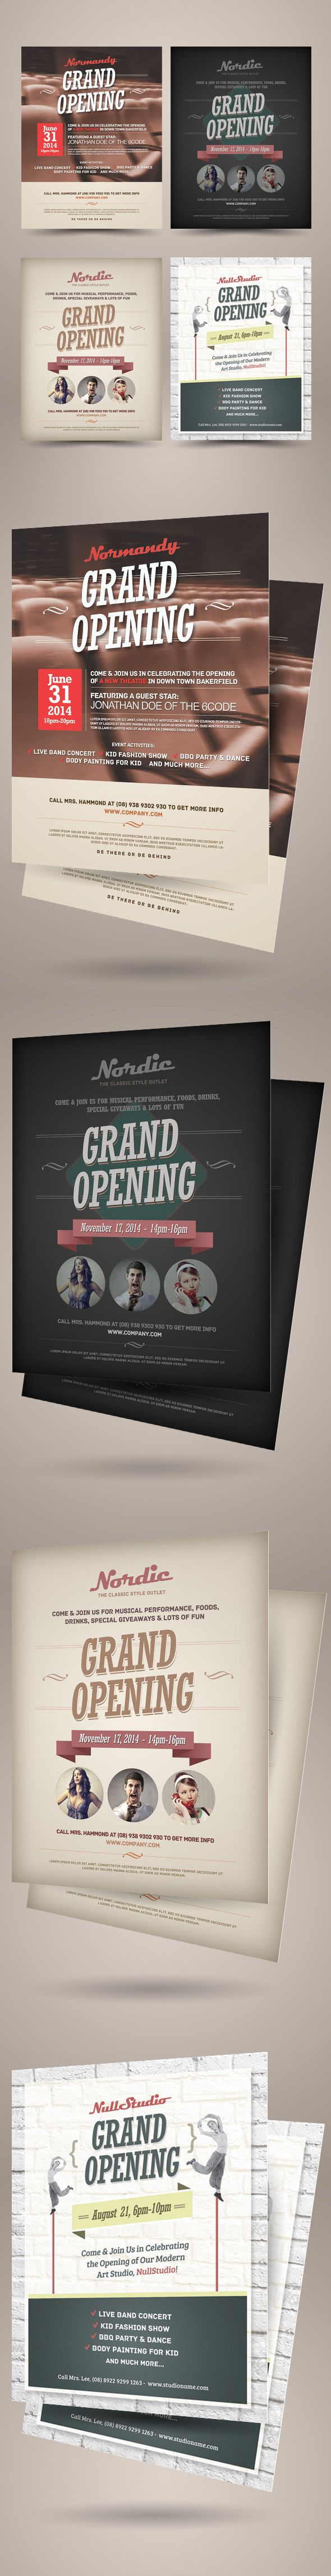 Grand Opening Flyers Vol.01 on Behance